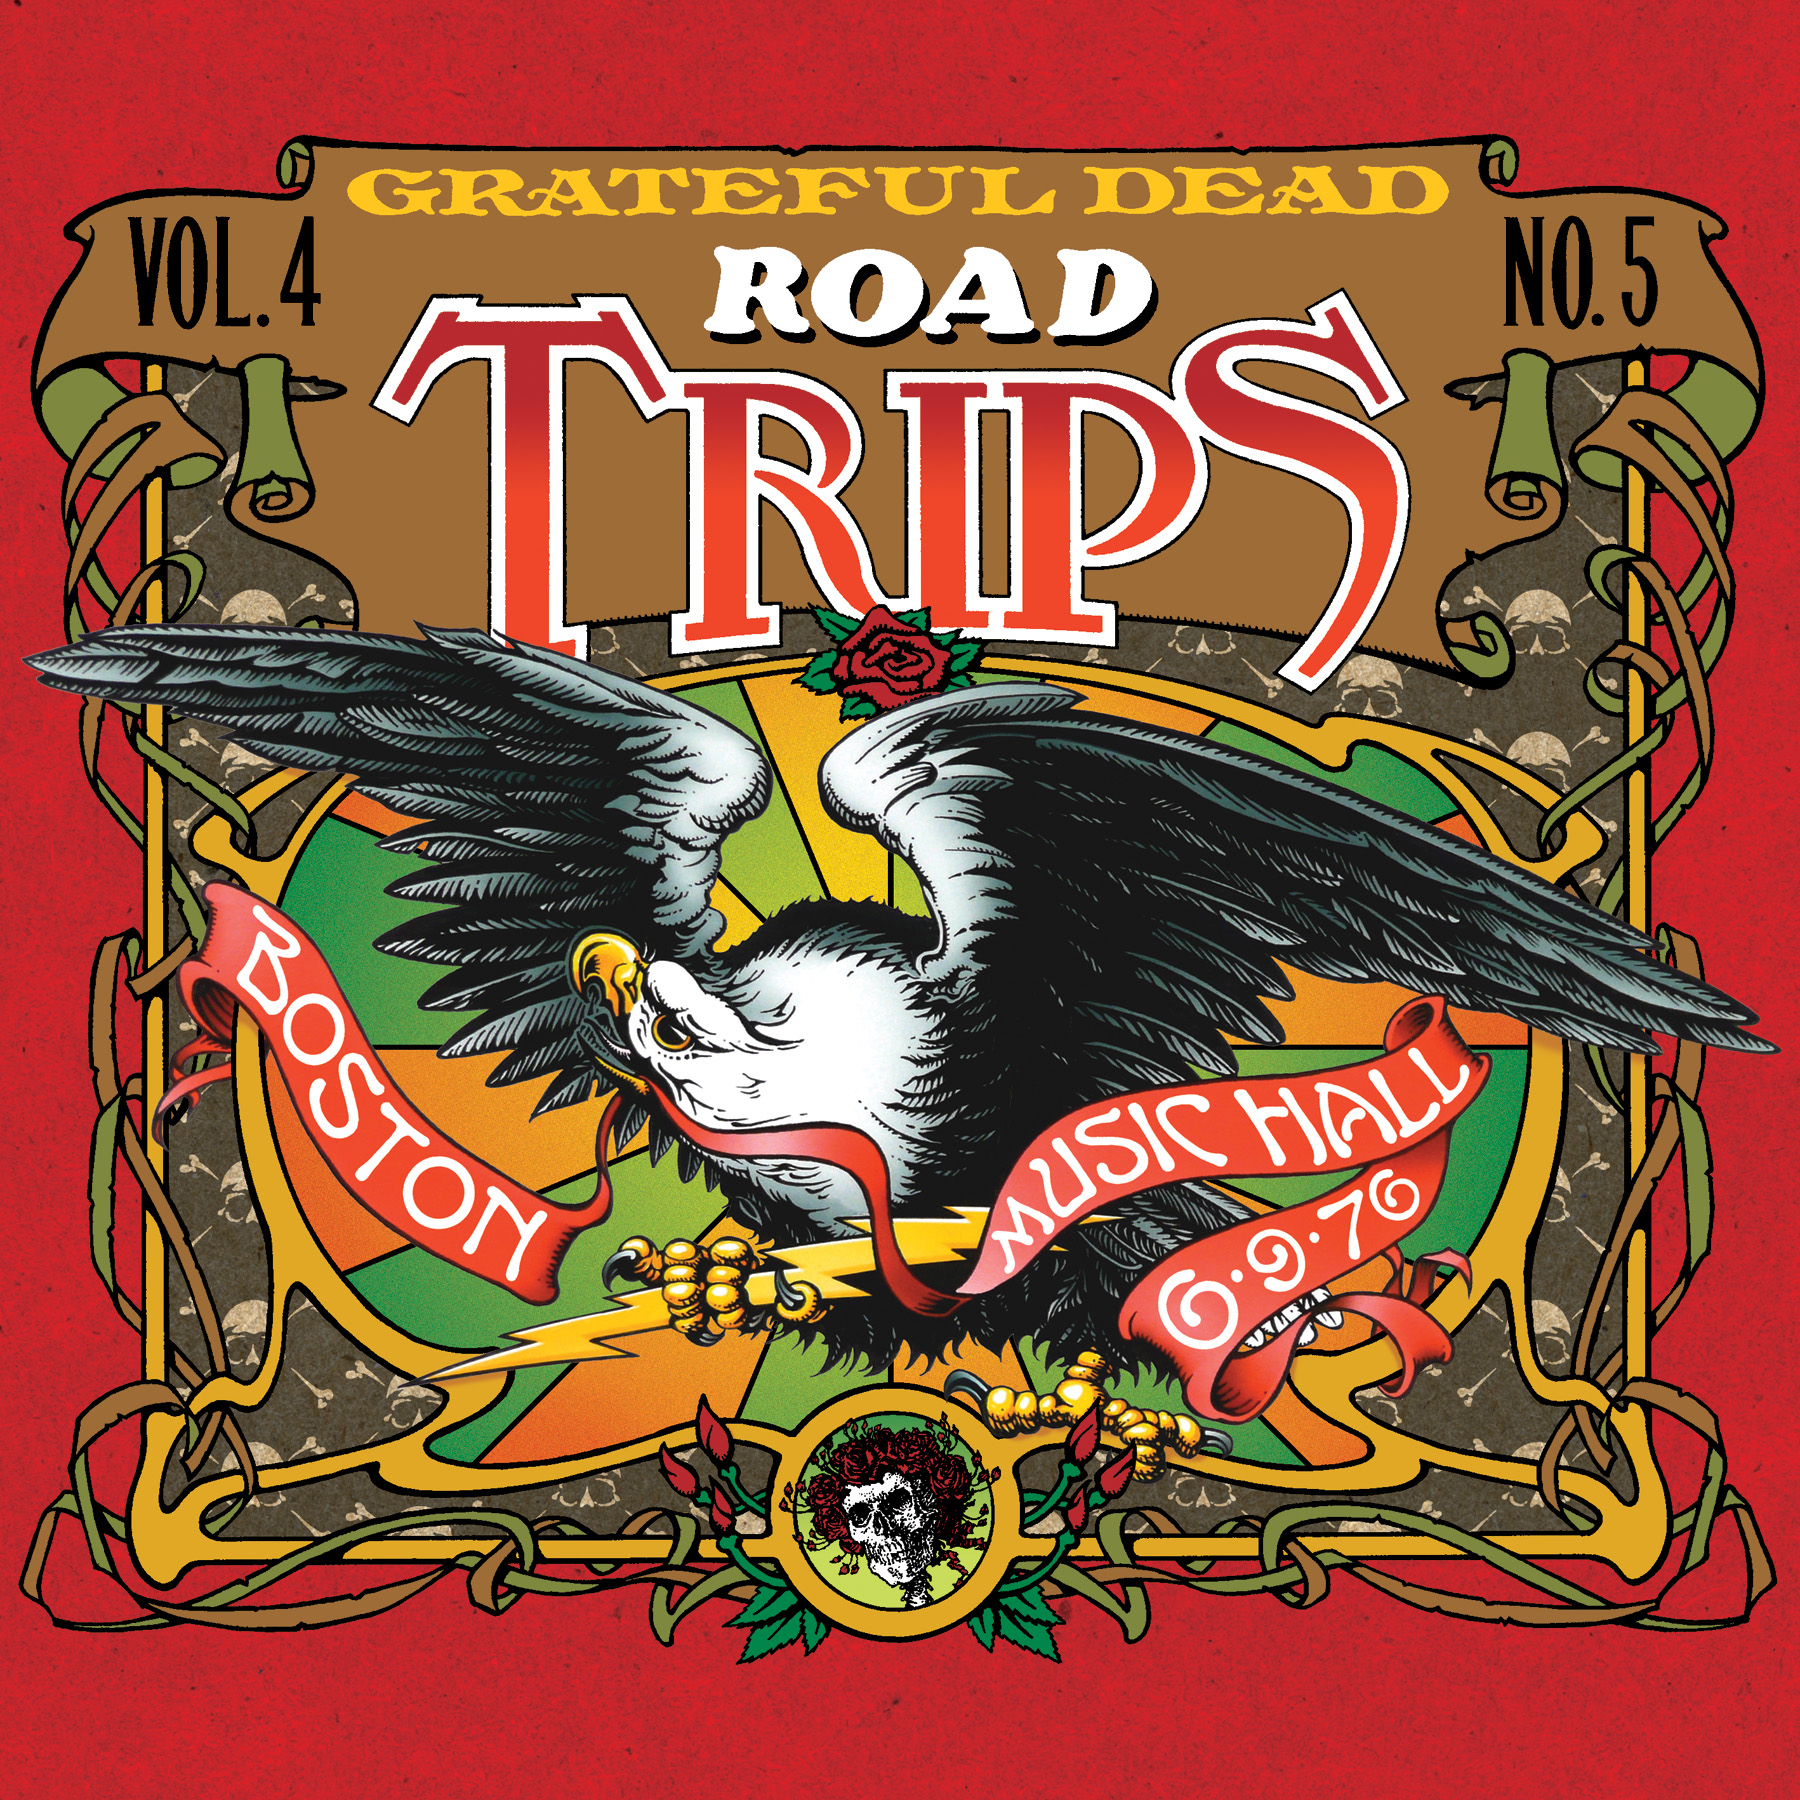 Grateful Dead Road Trips 4.5 album cover artwork